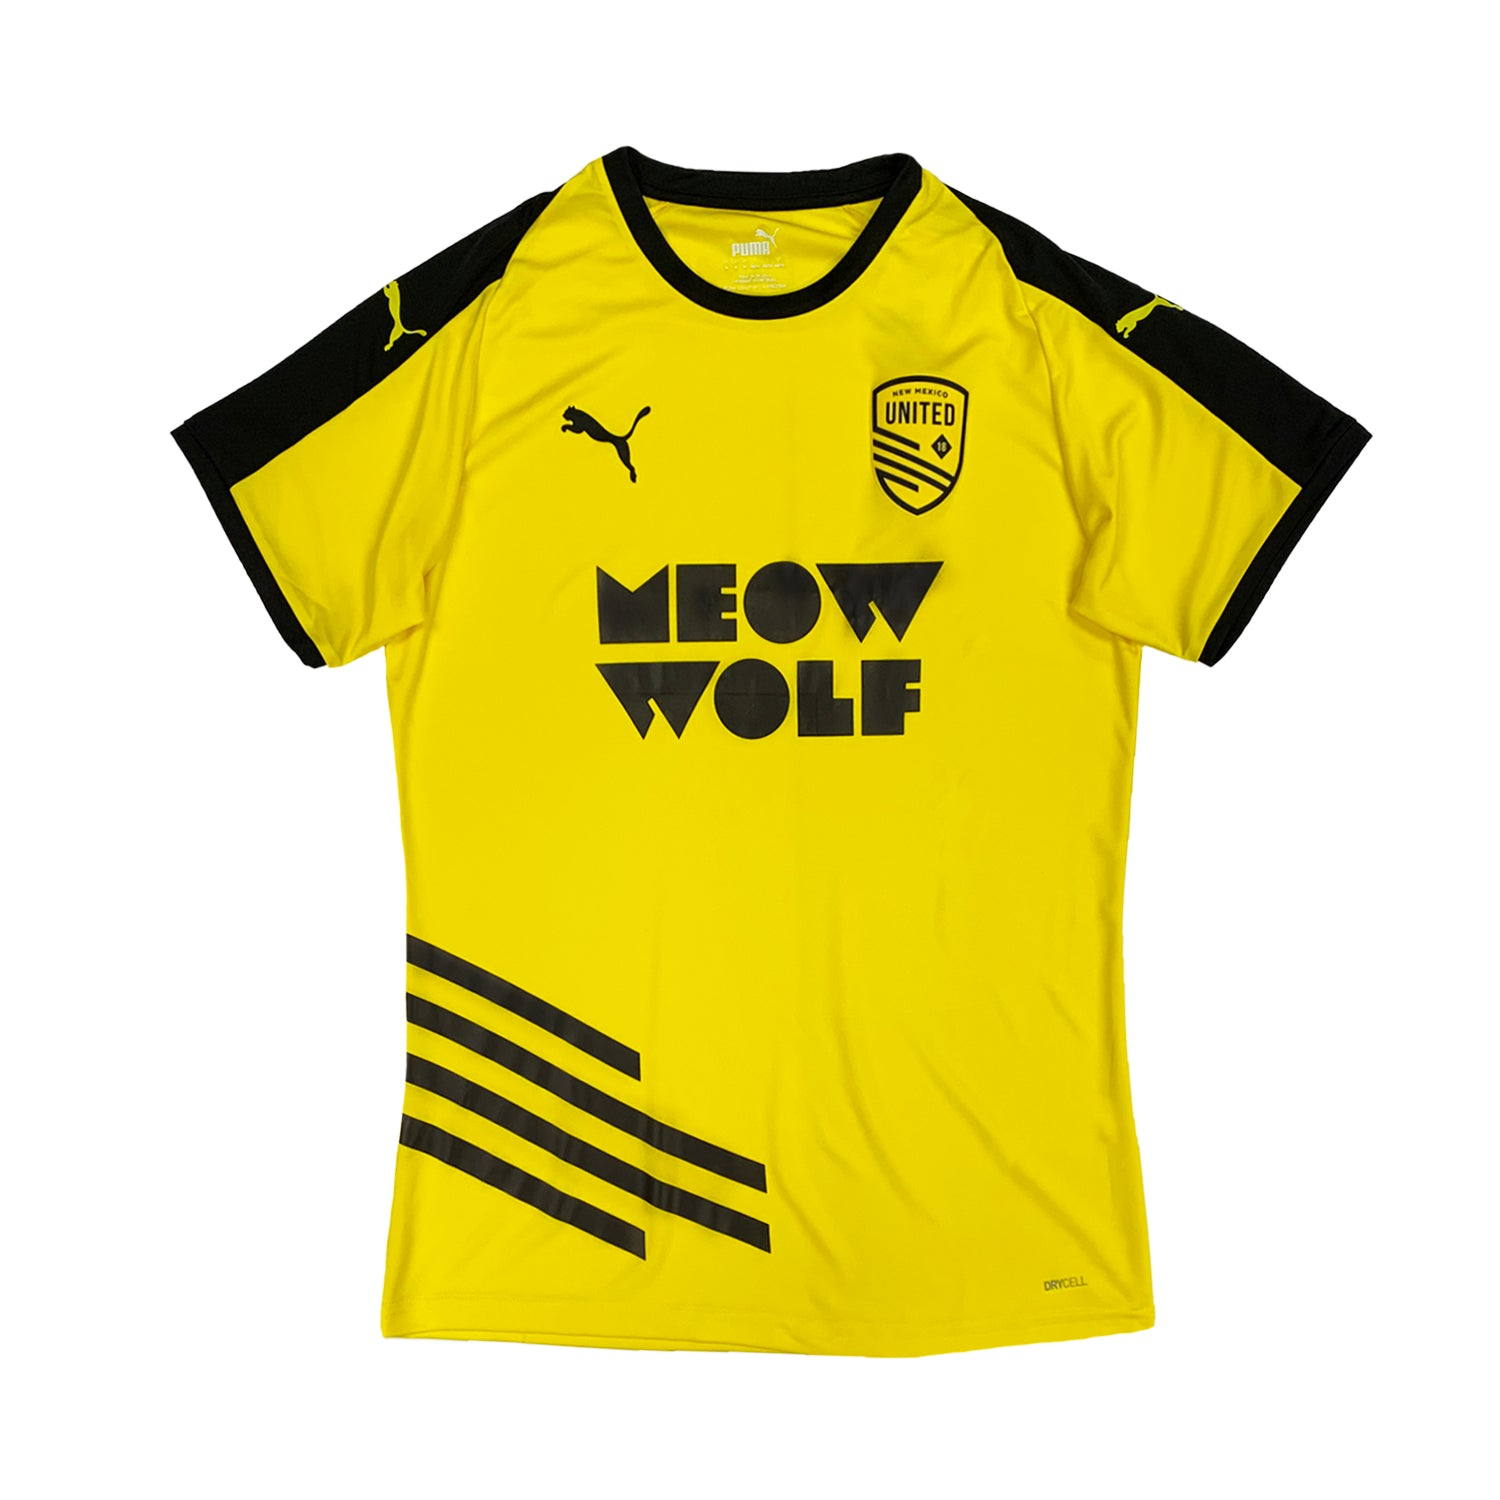 New Mexico United Women's Puma 2020 Meow Wolf Away Jersey